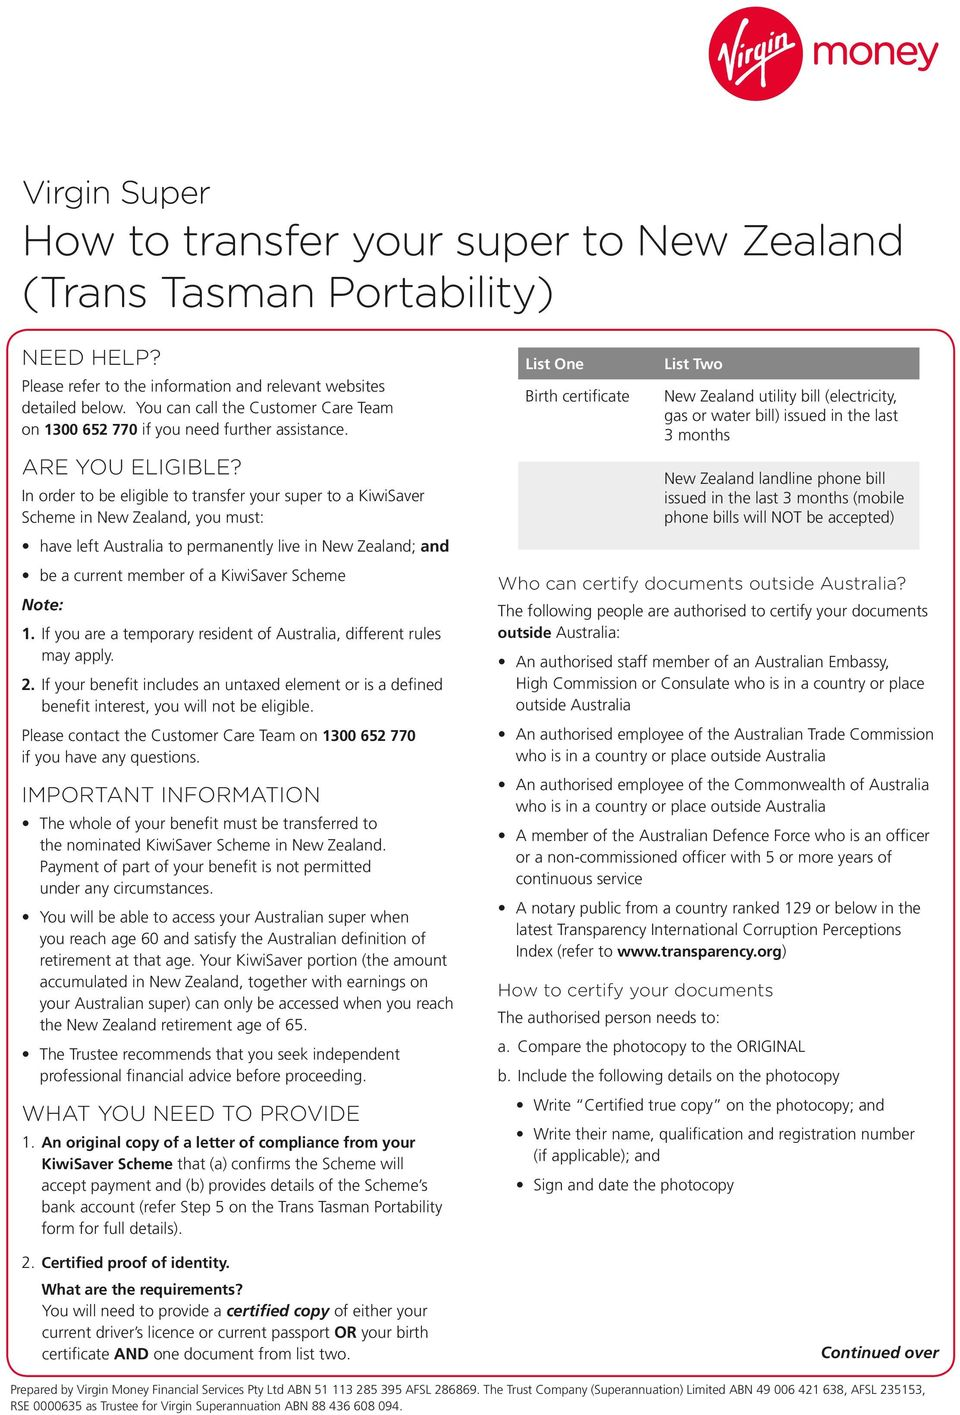 In order to be eligible to transfer your super to a KiwiSaver Scheme in New Zealand, you must: have left Australia to permanently live in New Zealand; and be a current member of a KiwiSaver Scheme